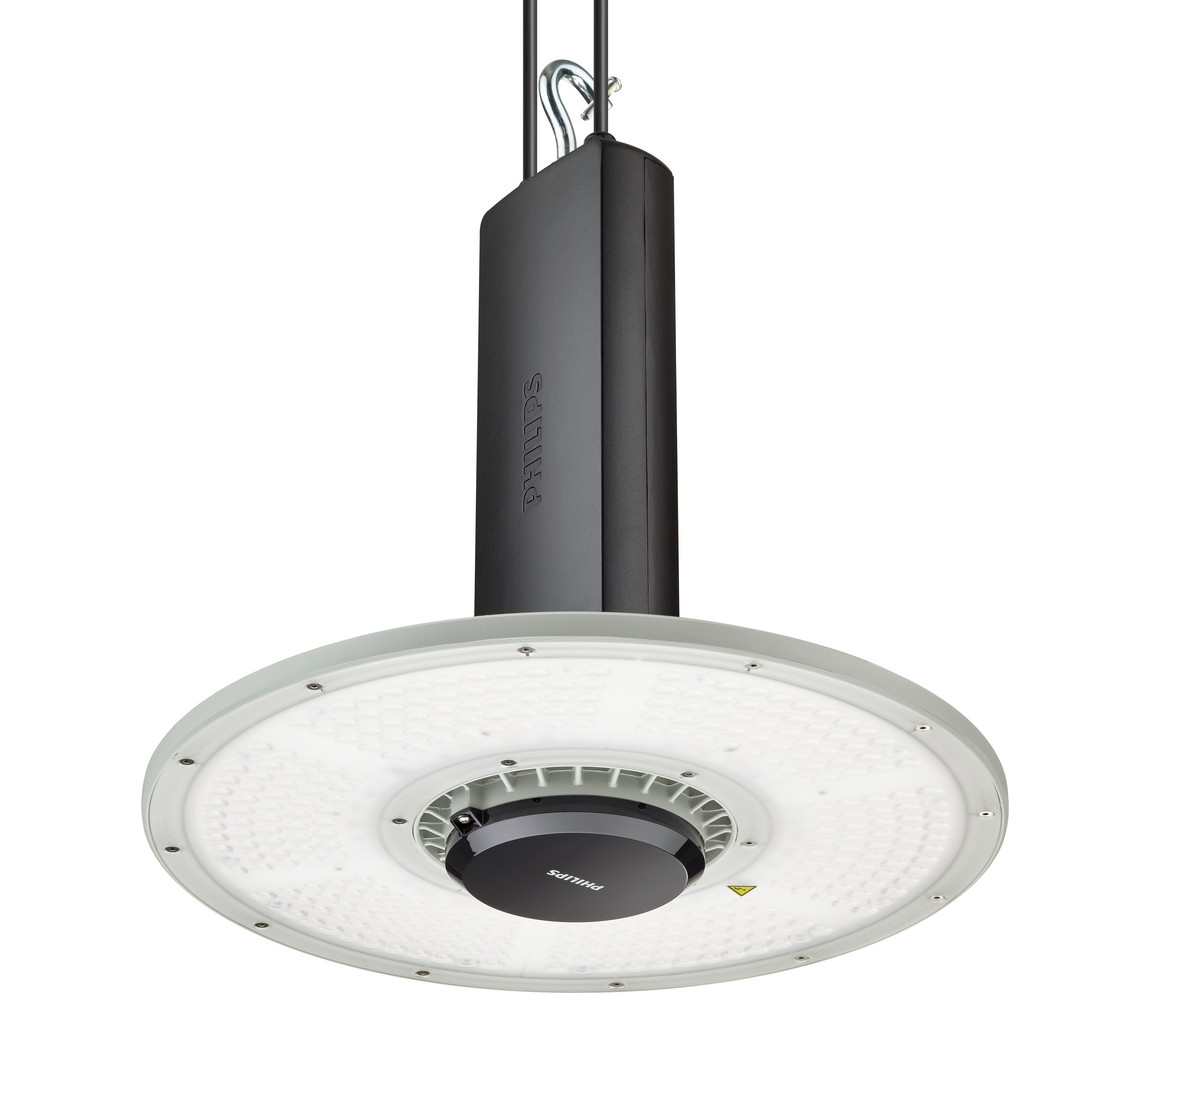 Philips CoreLine Highbay Gen4 BY121P LED 20000lm/840 DALI Bredstrålende (WB)